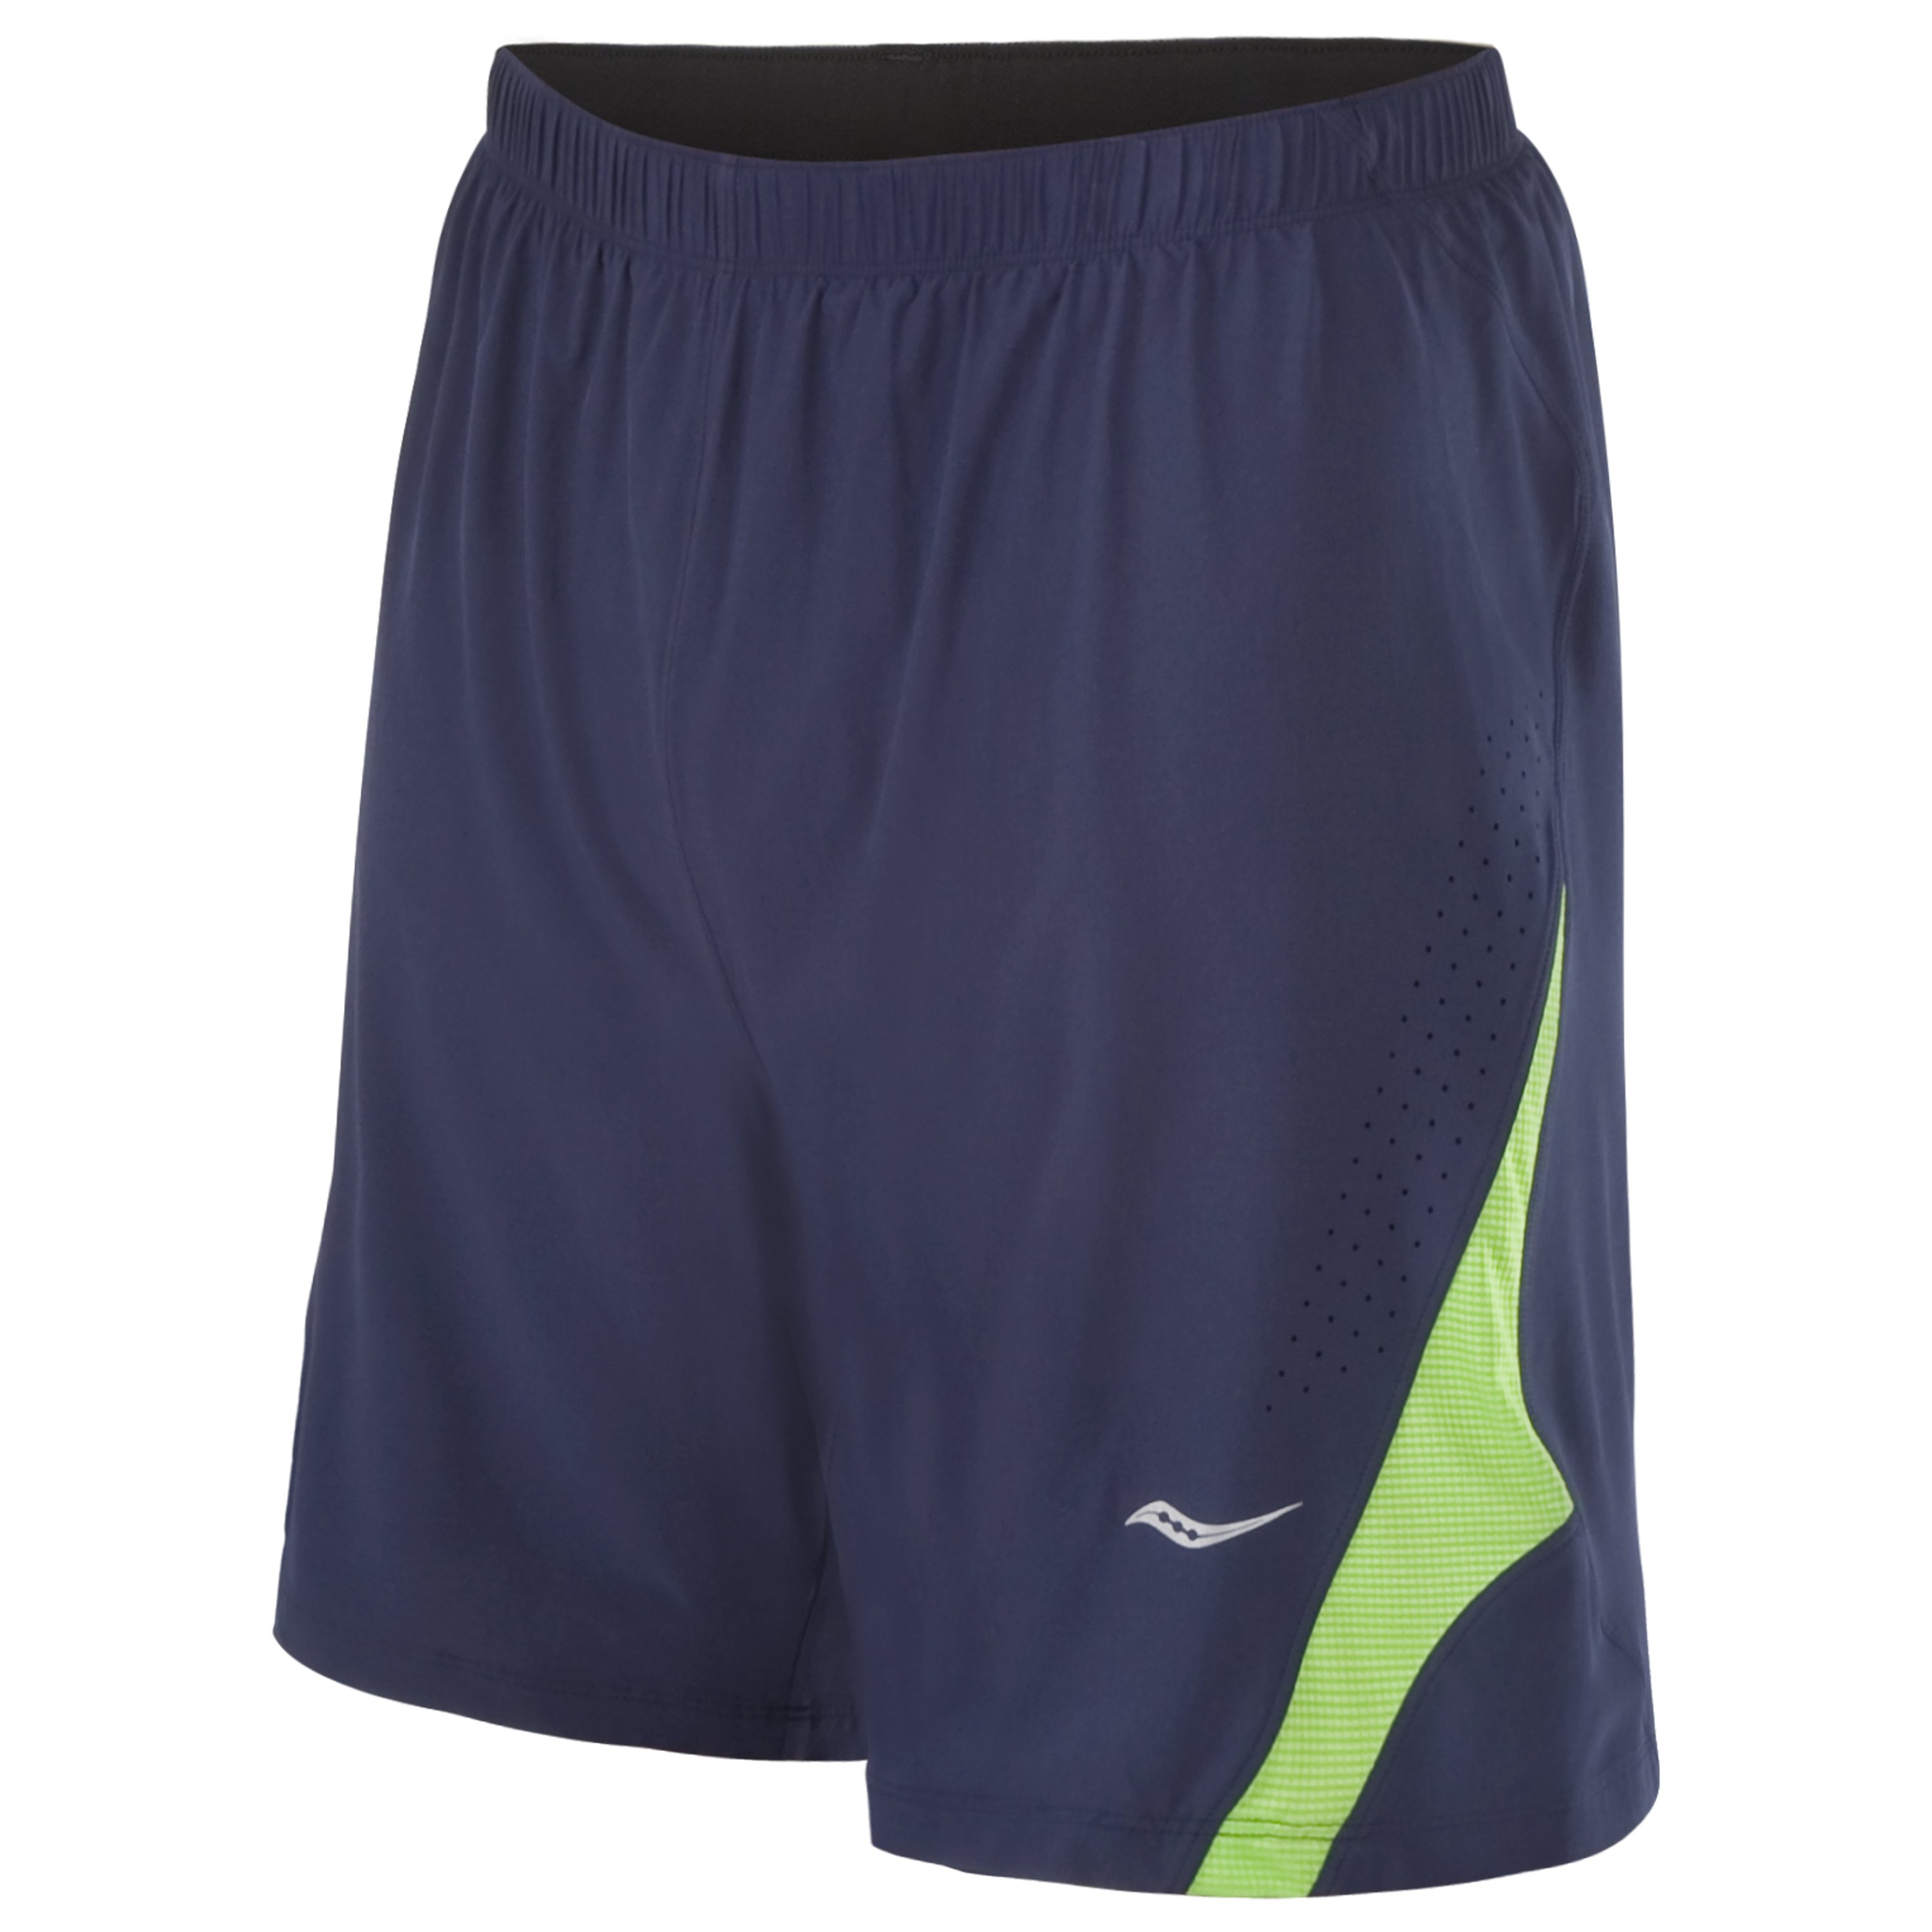 Saucony Short Interval 2-1 M v�tement running homme